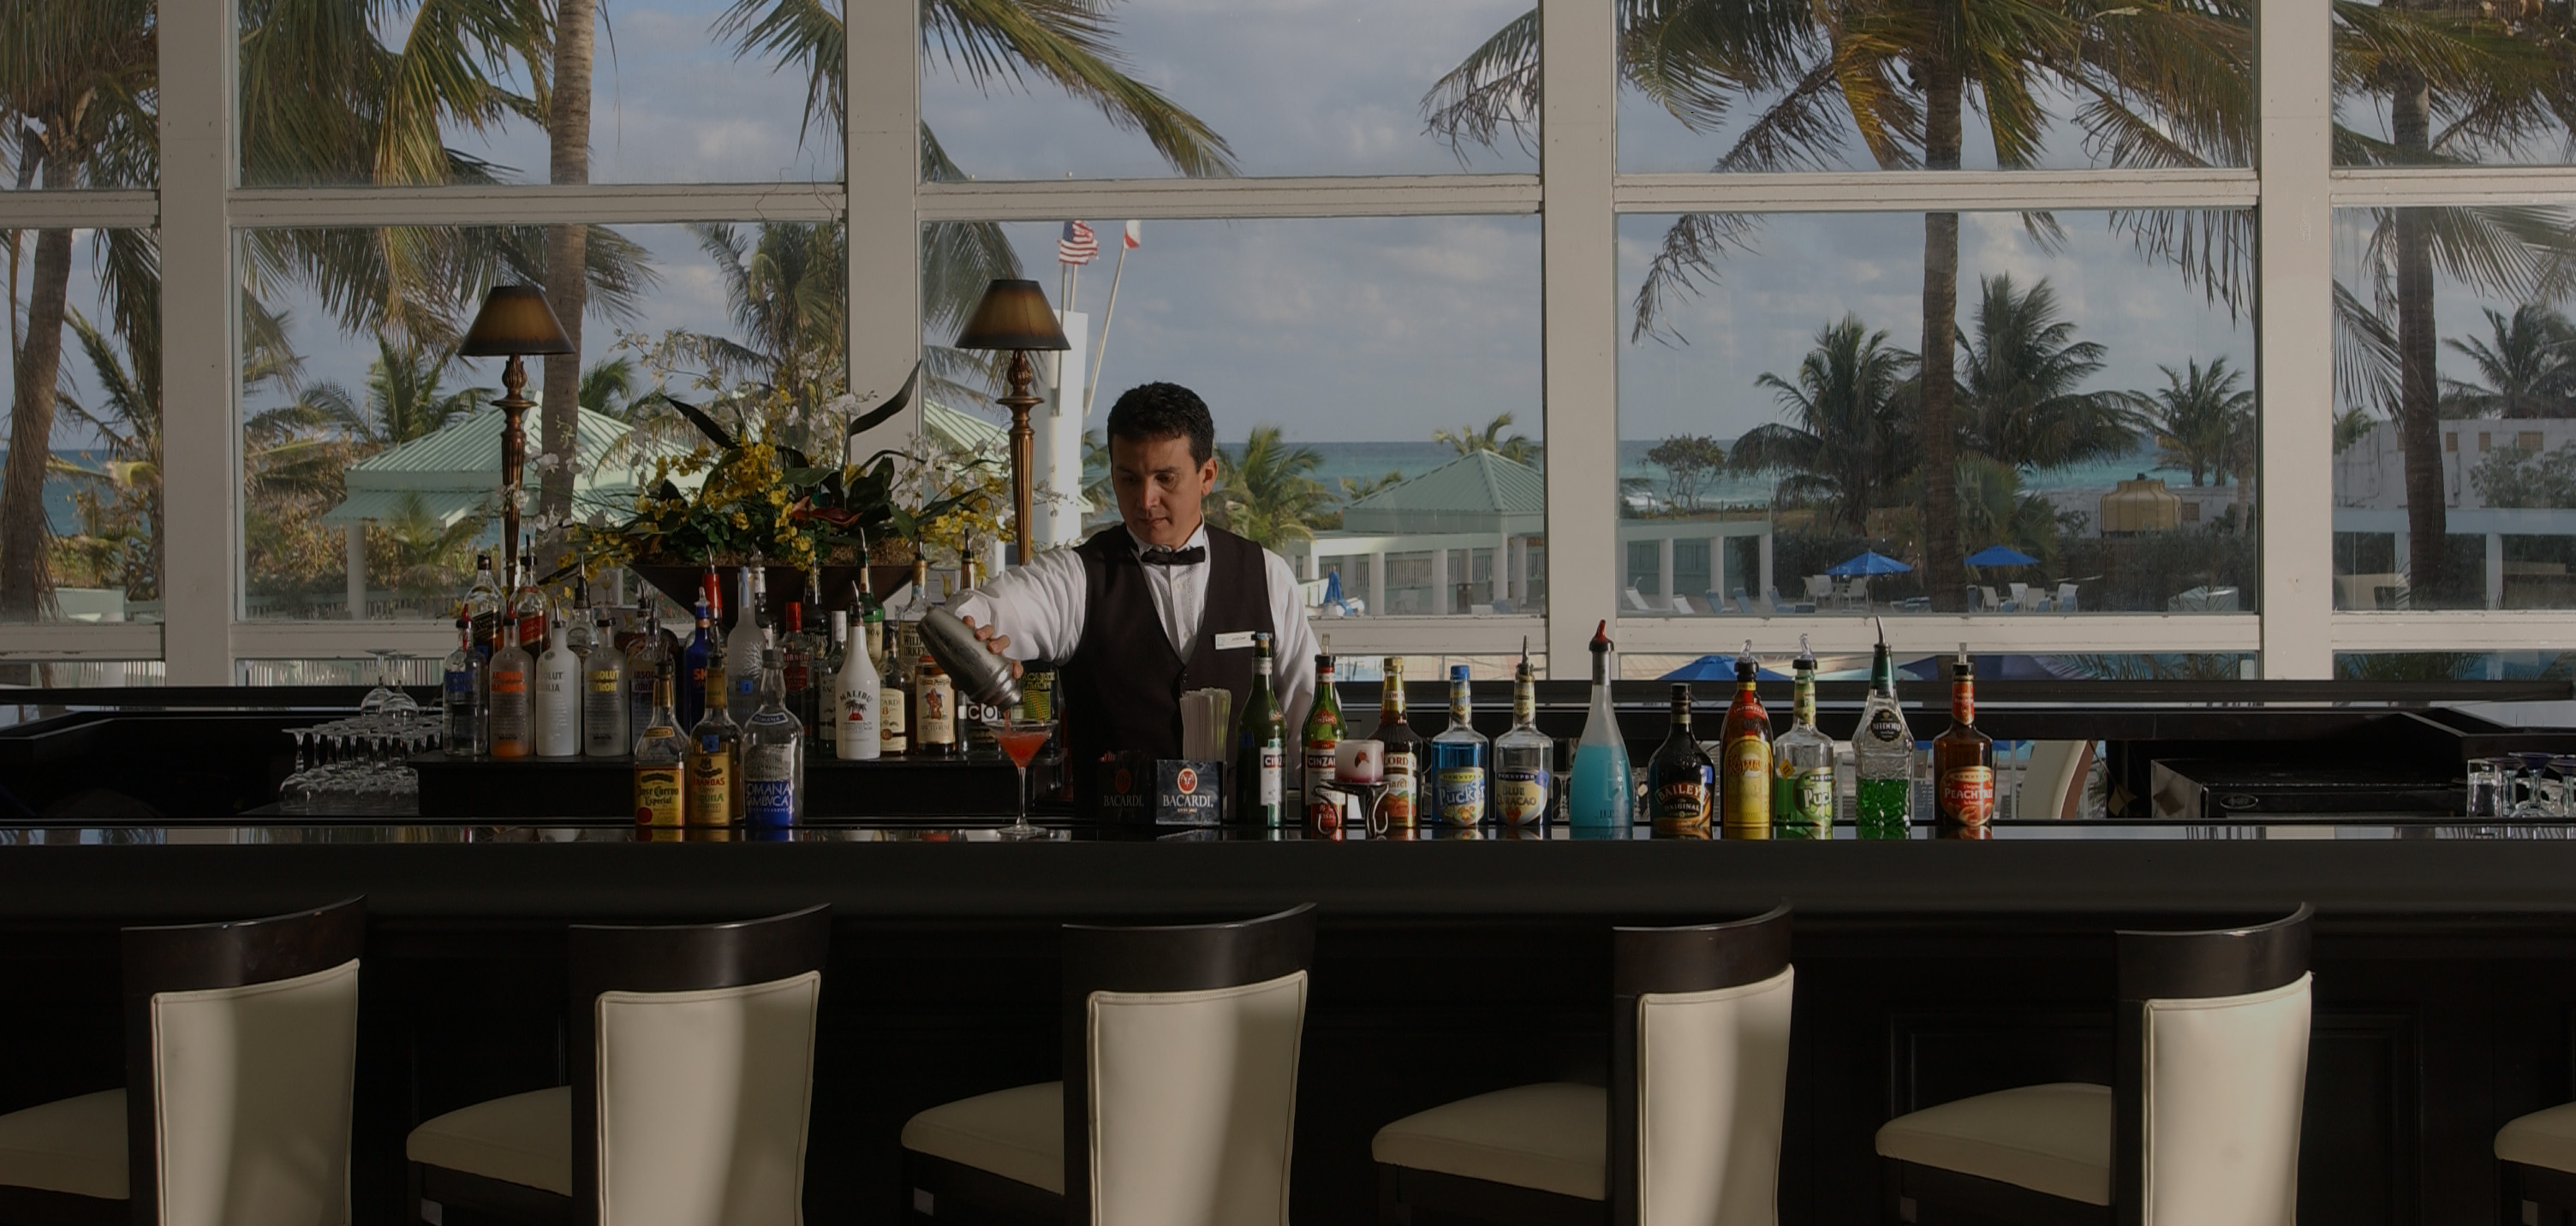 Doing drinks at the Deauville Beach Resort's Lobby Bar